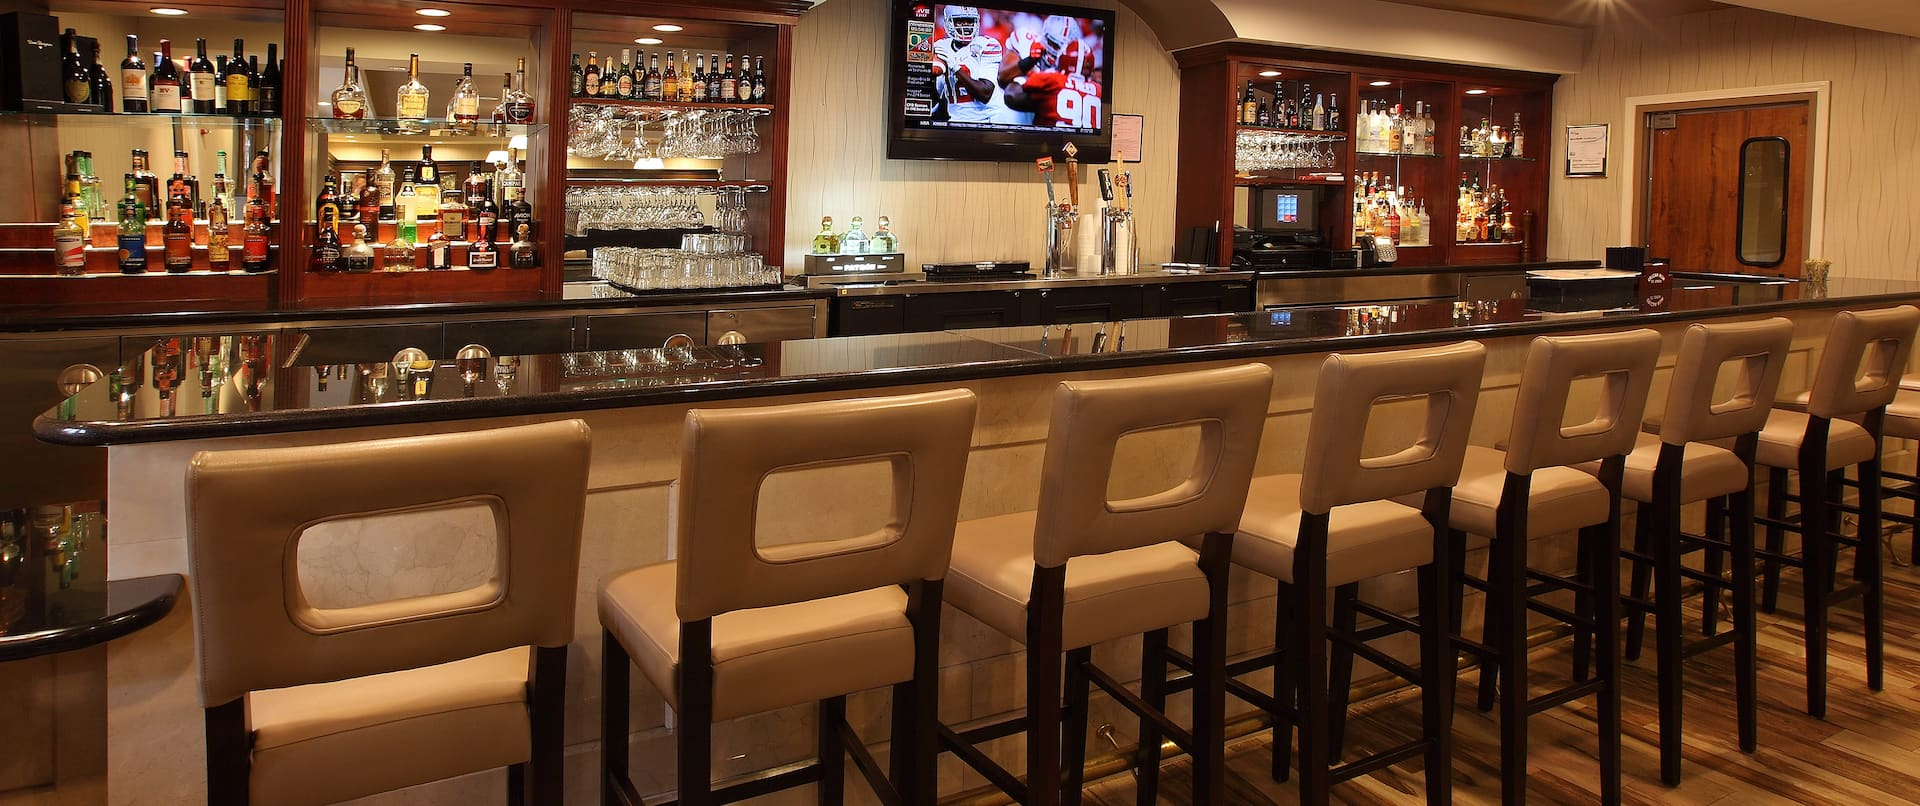 Angled View of Counter Seating and TV at Fully Stocked Bar